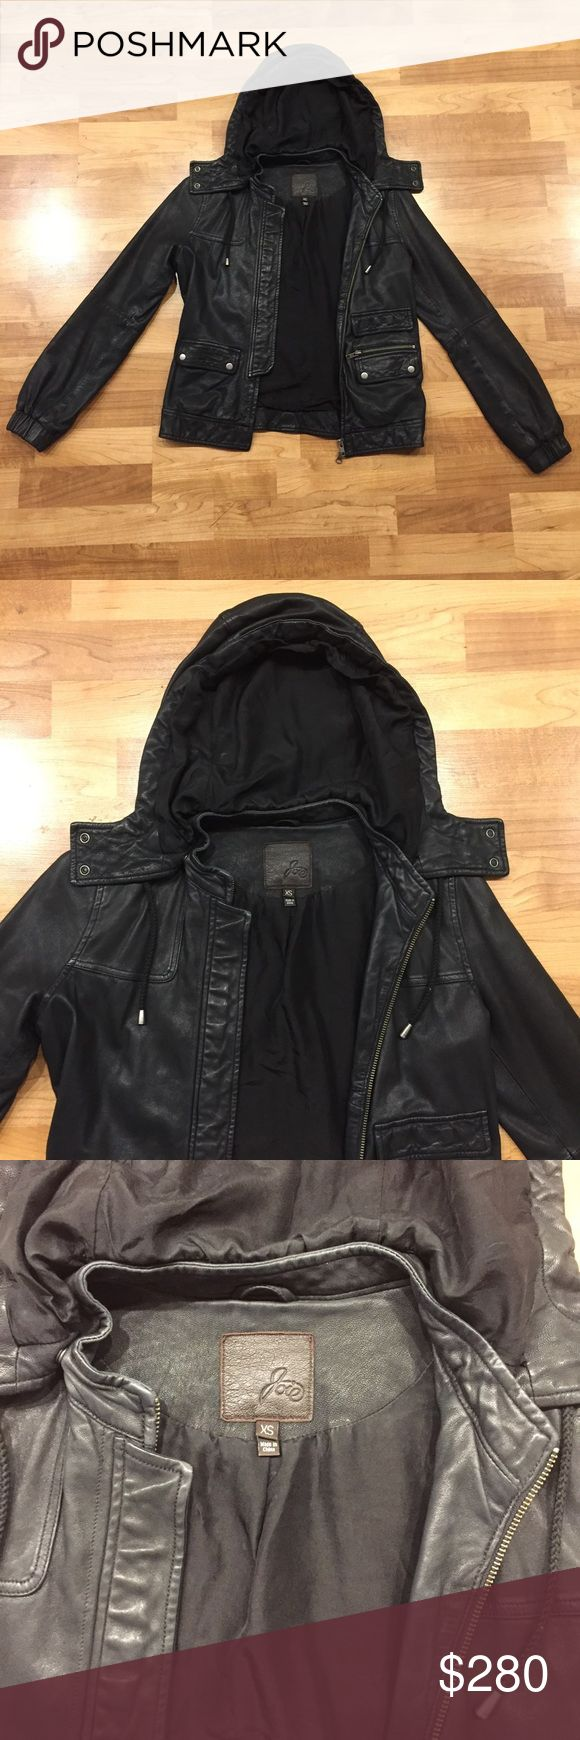 Joie Washed Lambskin Leather Jacket Excellent condition, removable hood, fully lined, soft lambskin leather with front pockets and zip closure. No trades, thank you. Joie Jackets & Coats